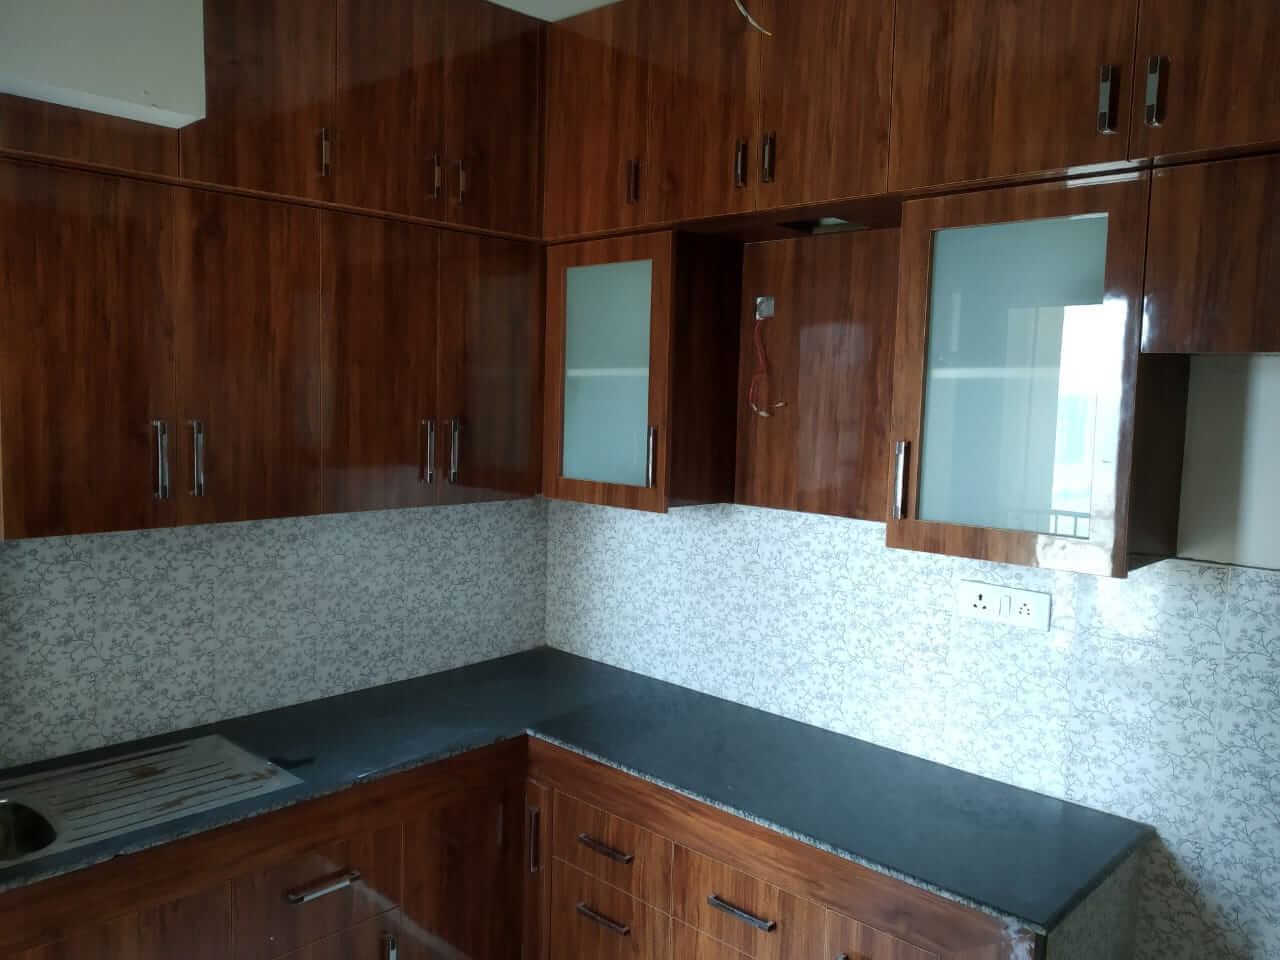 3 BHK semi furnished flat for rent in noida extention for only 12k PM